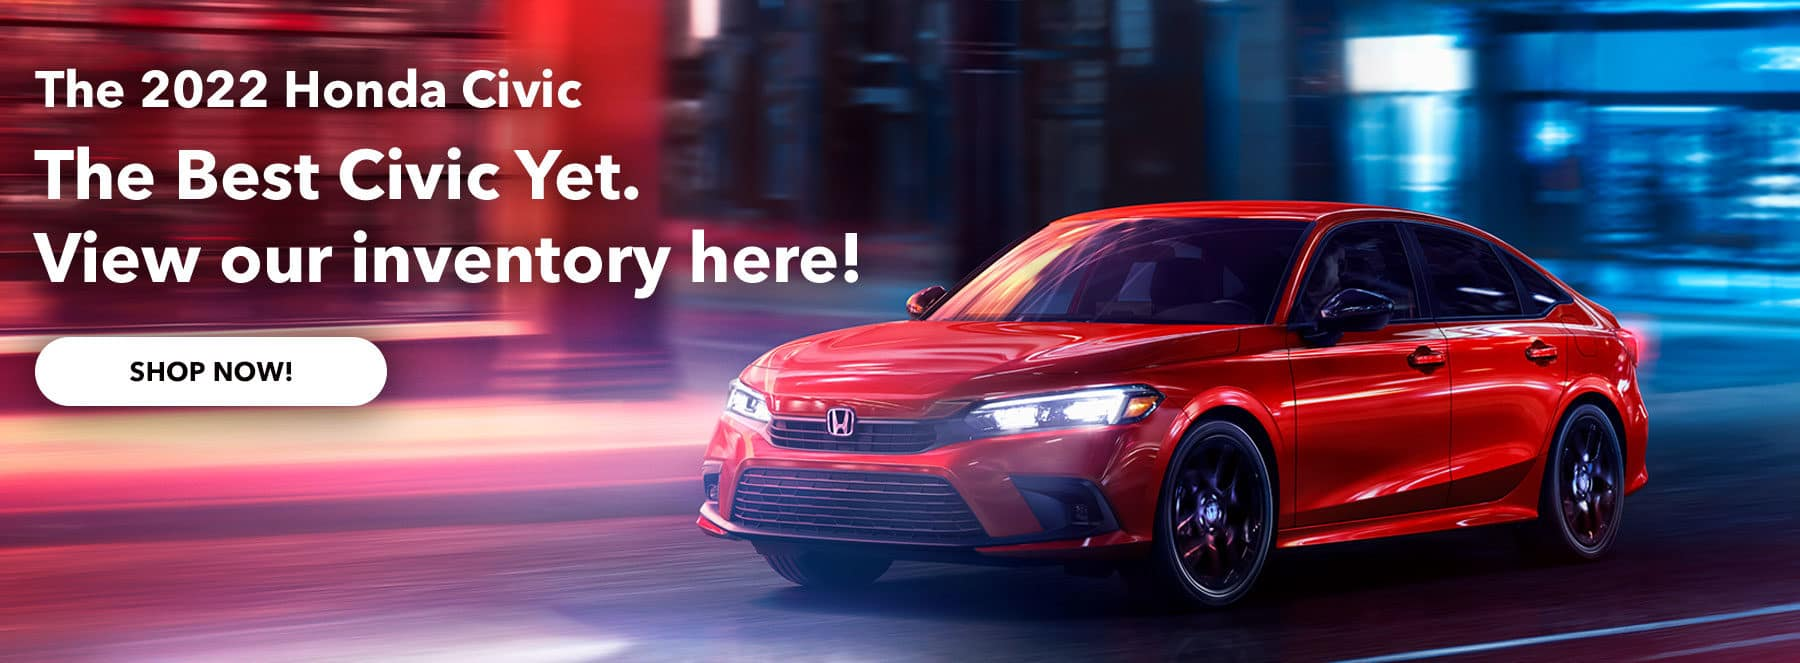 The 2022 Honda Civic. The Best Civic Yet. View our inventory here!